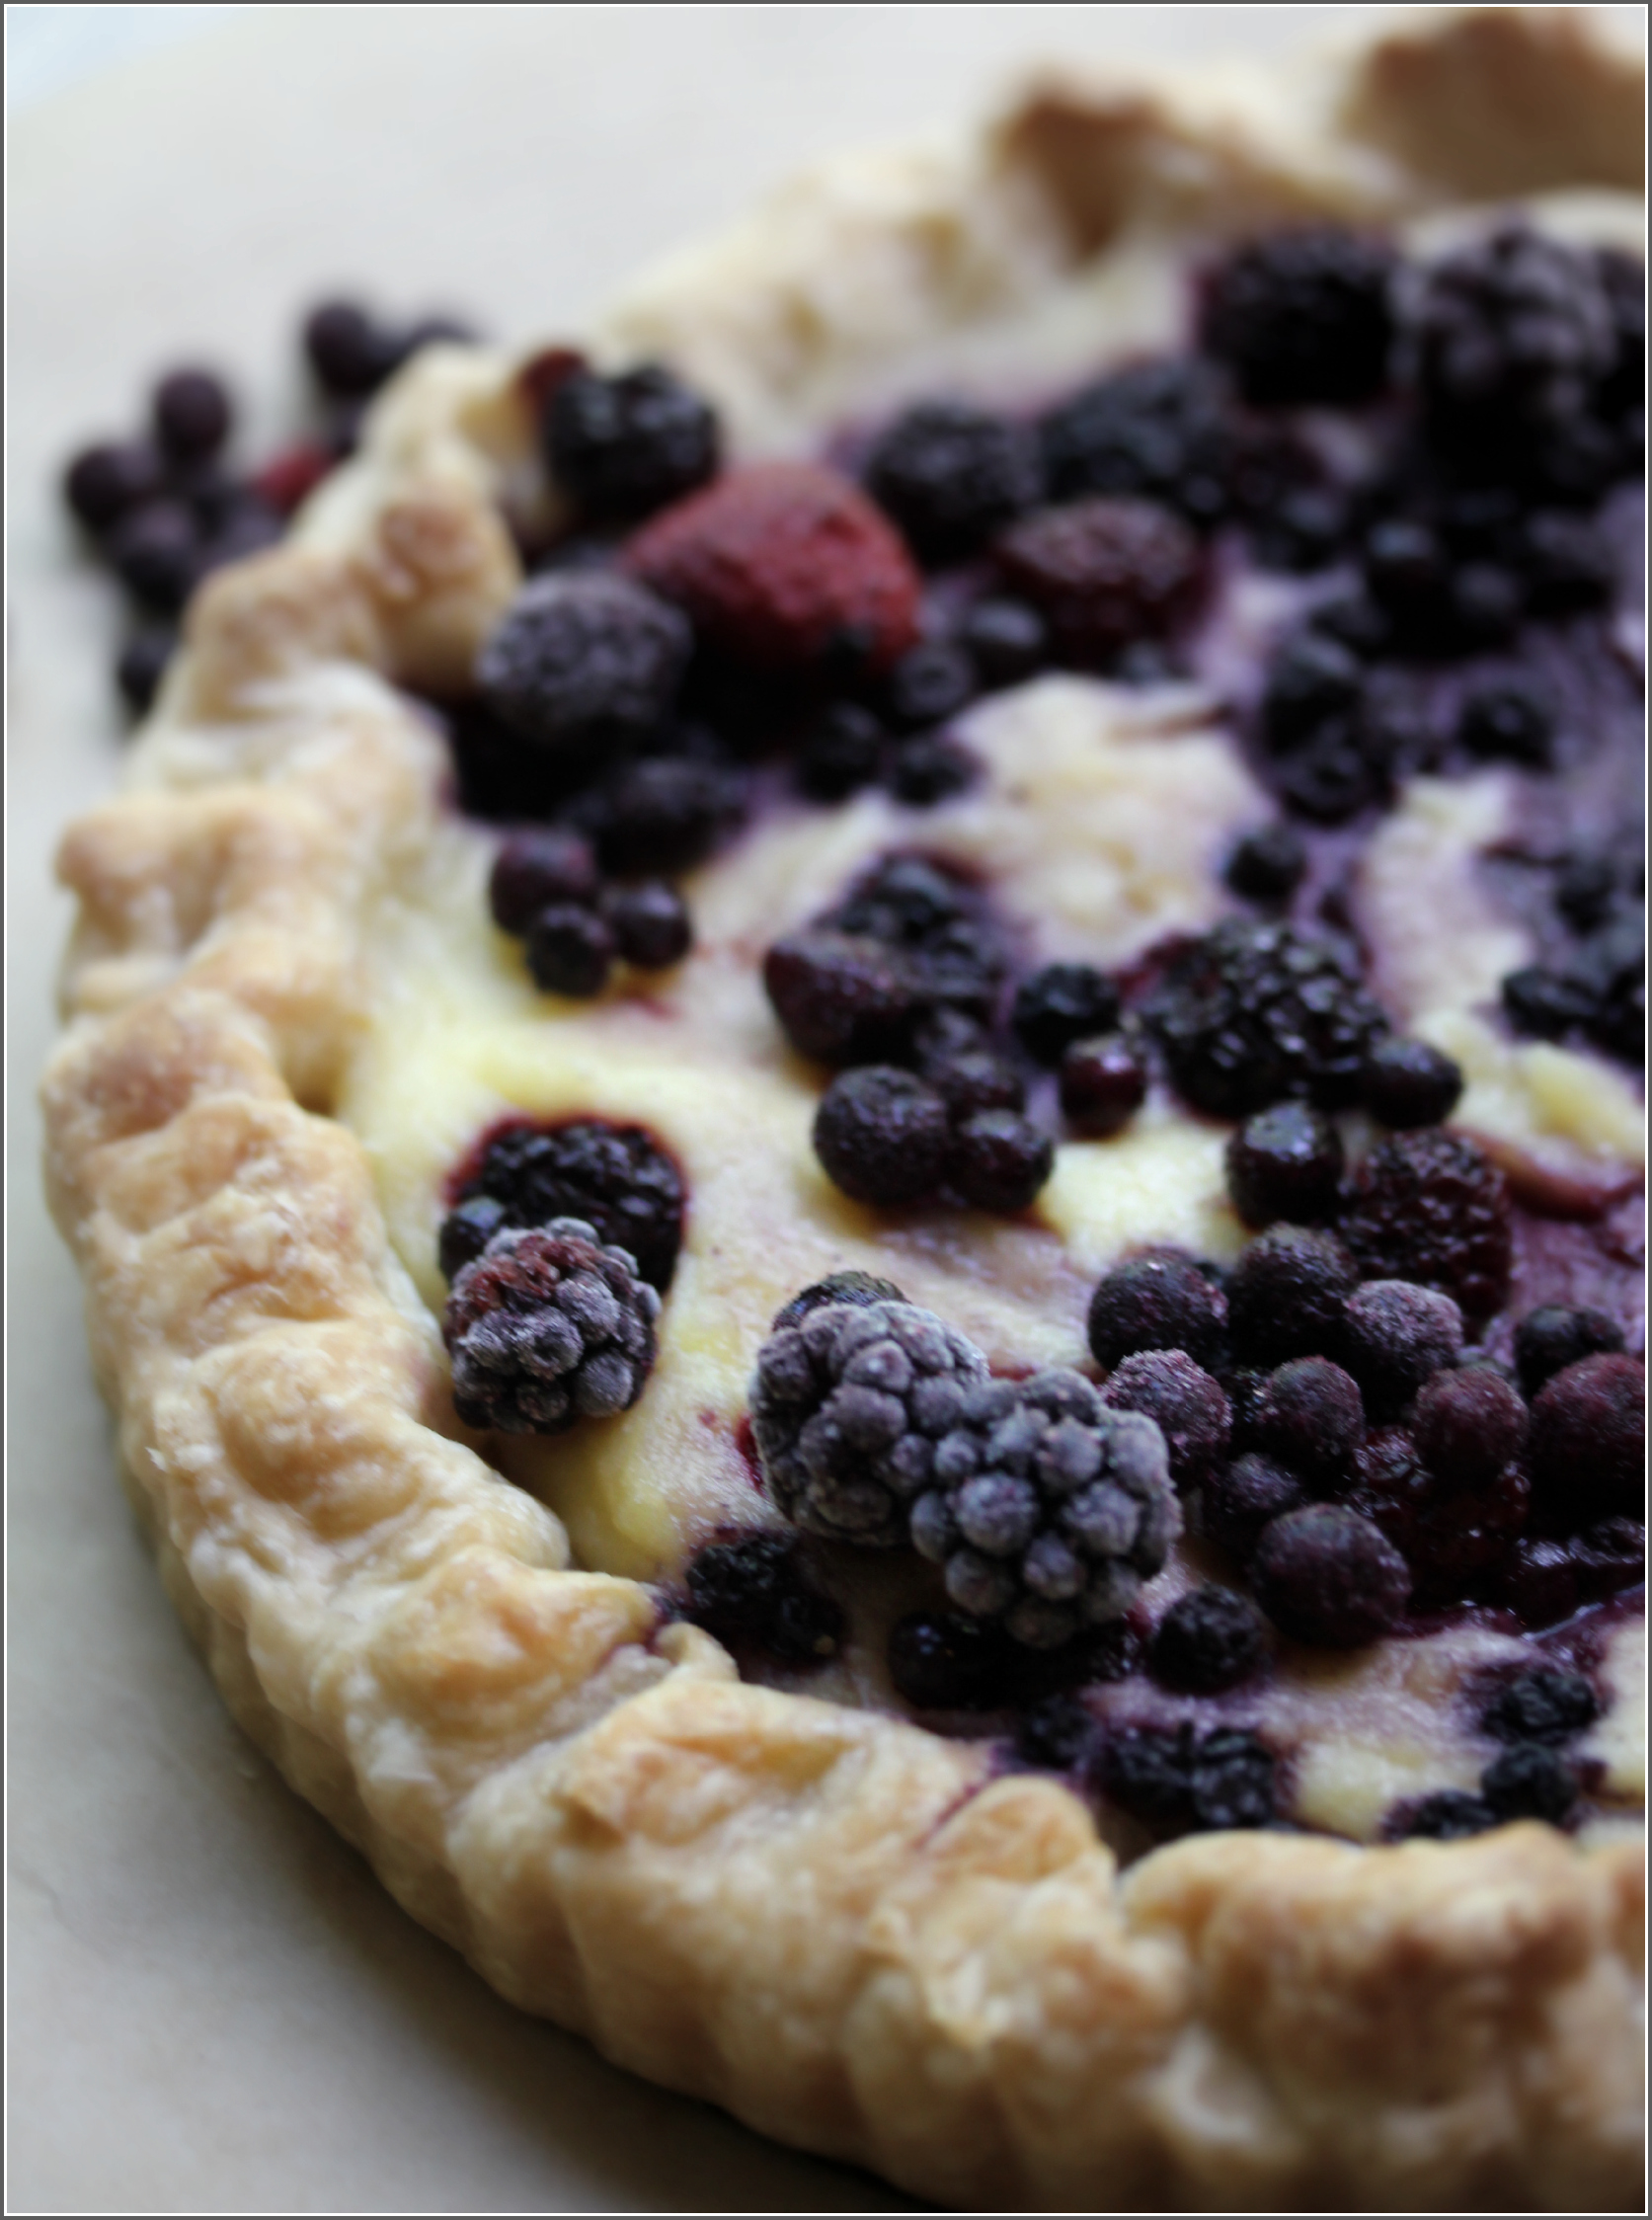 Partial Mixed Berry and Semolina Tart Up-close by Dena T Bray©